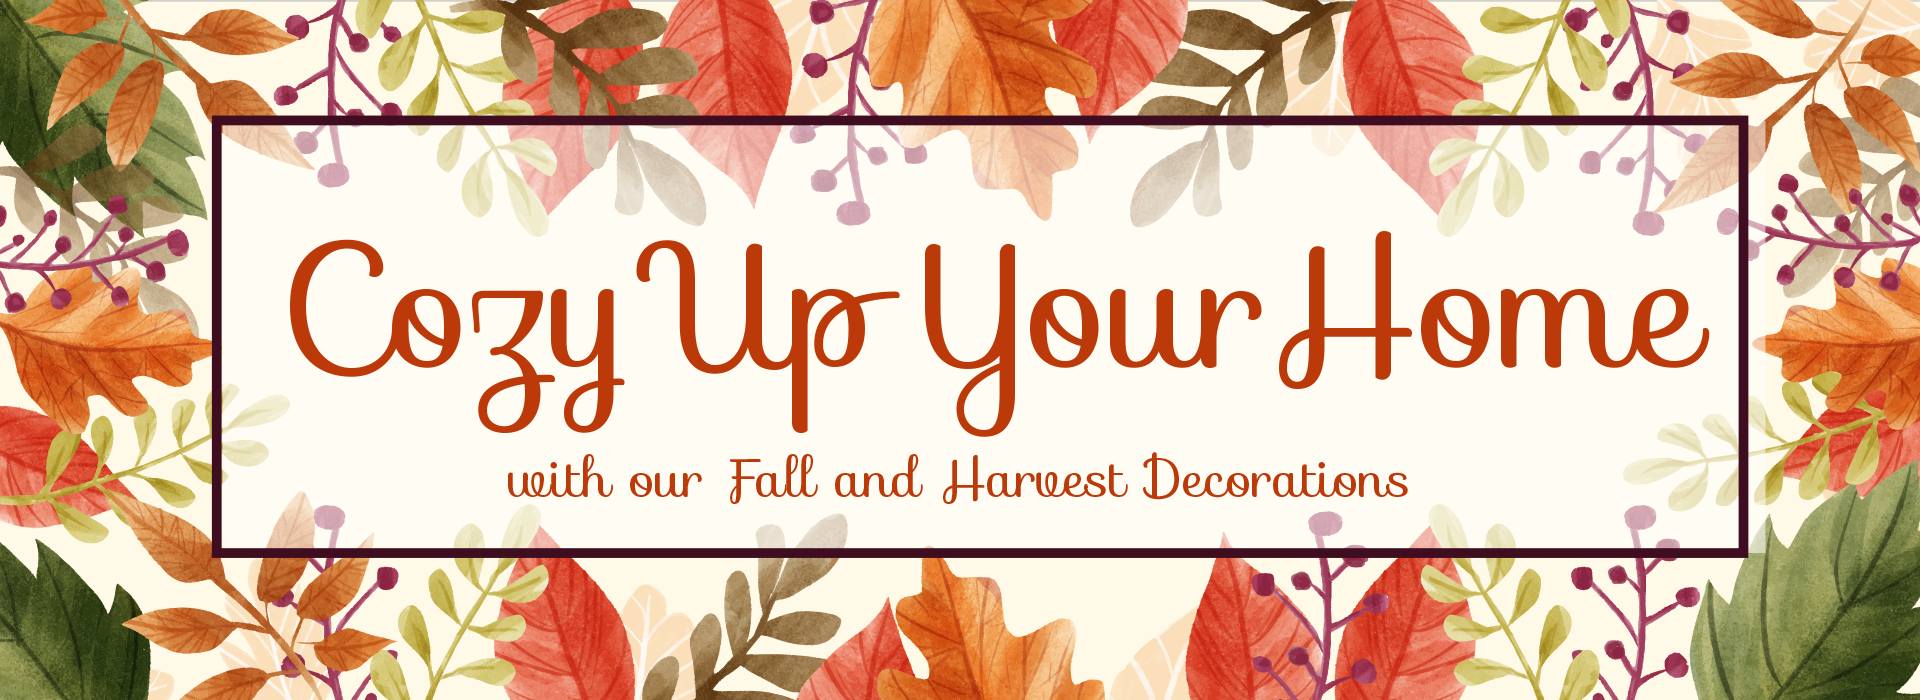 Cozy Up Your Home with our Fall and Harvest Decorations